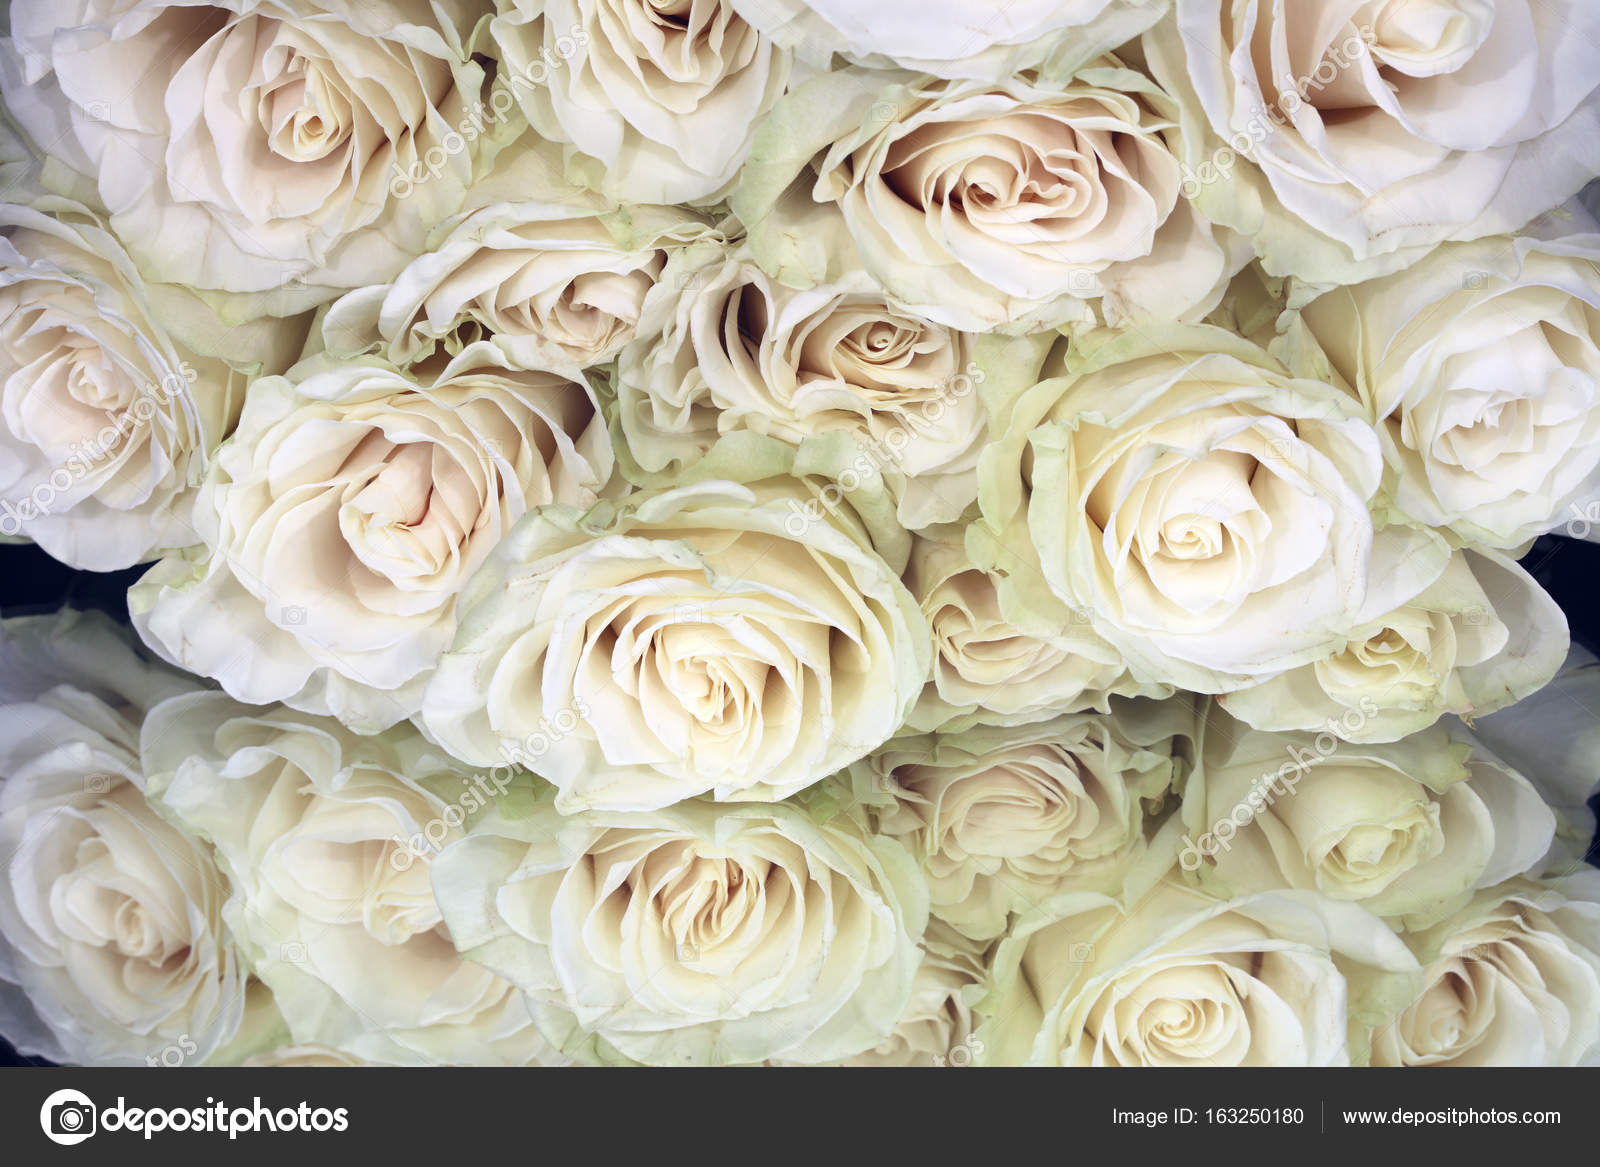 Bunch Of White Roses Stock Photo Benri185 163250180